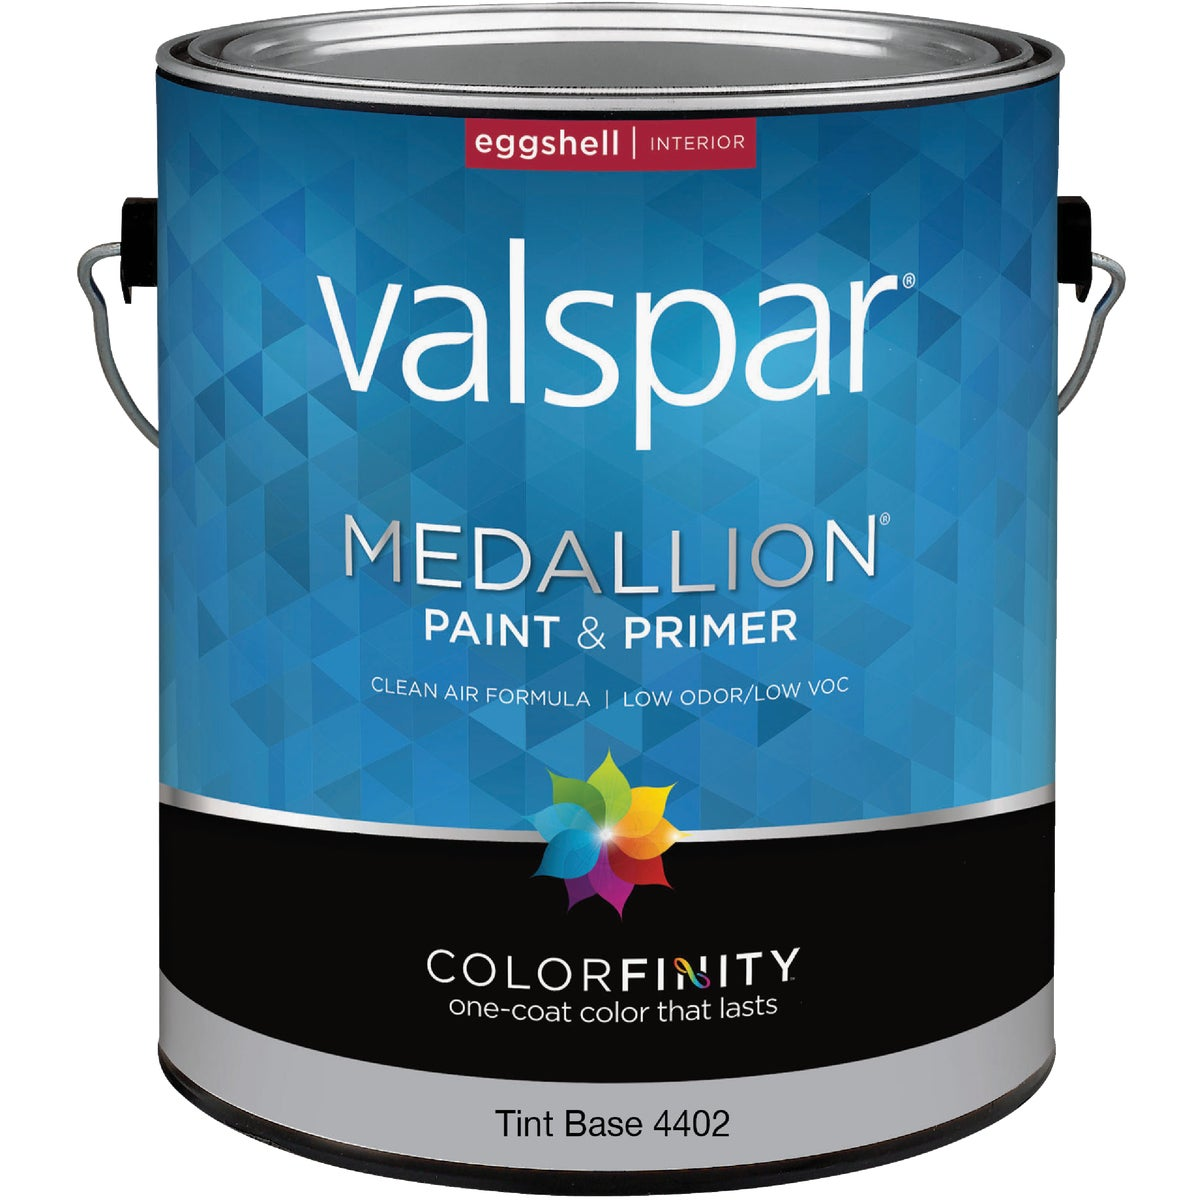 INT EGG TINT BS PAINT - 027.0004402.007 by Valspar Corp